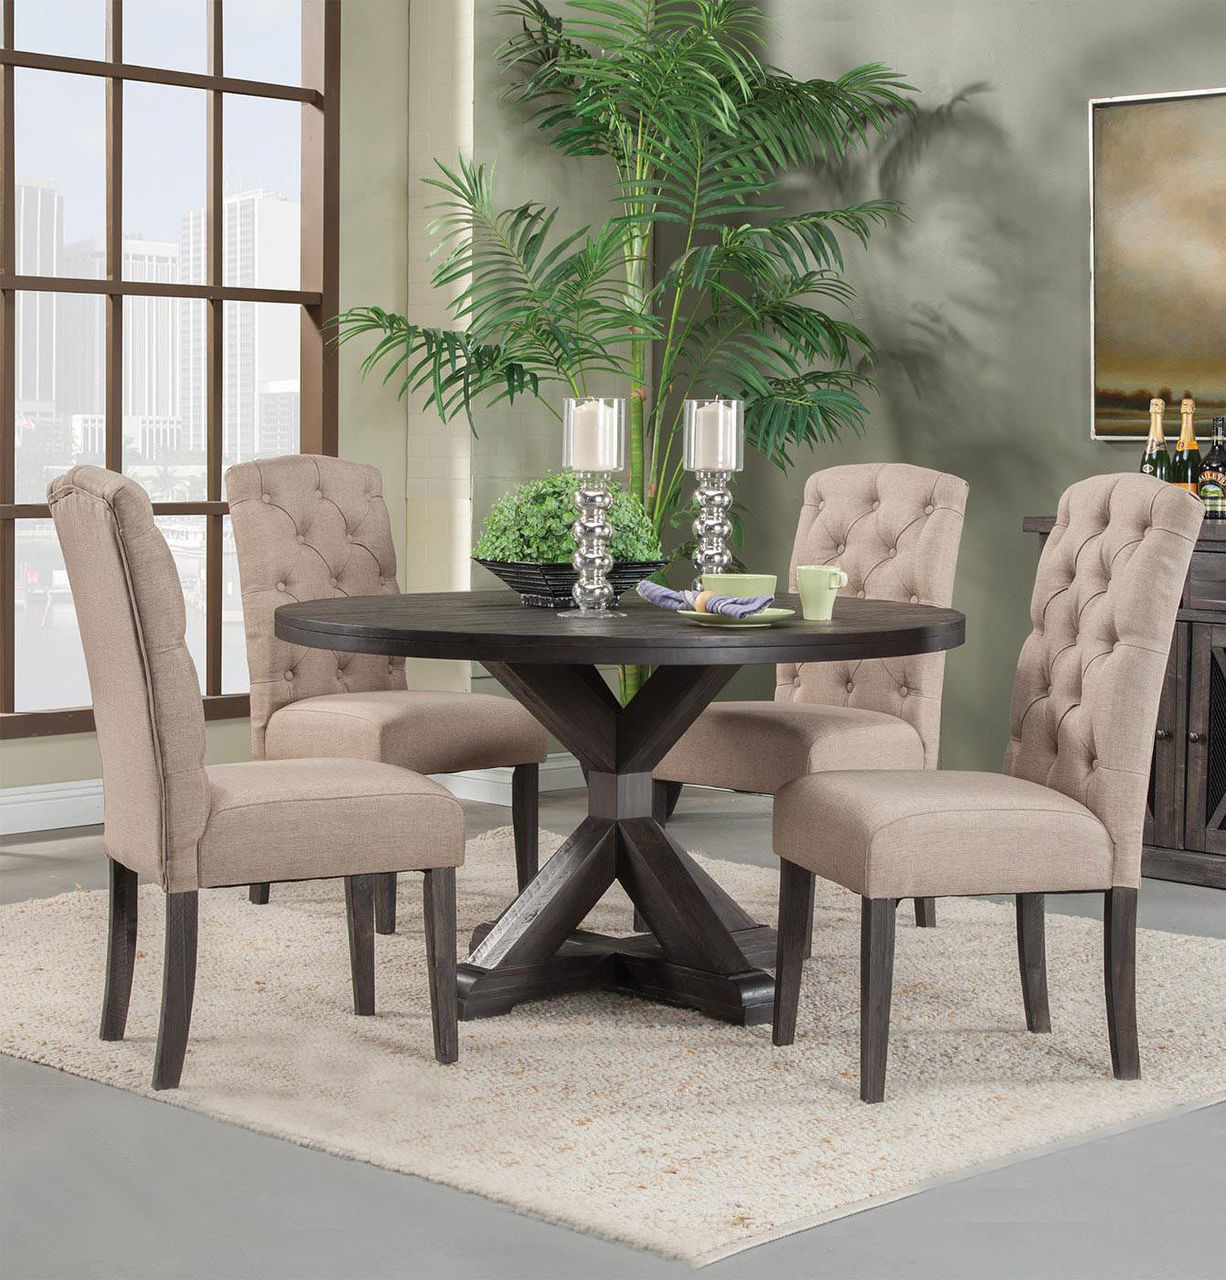 Dining Set Round Table: Fall Trend: Rustic Dining Table And Chair Sets